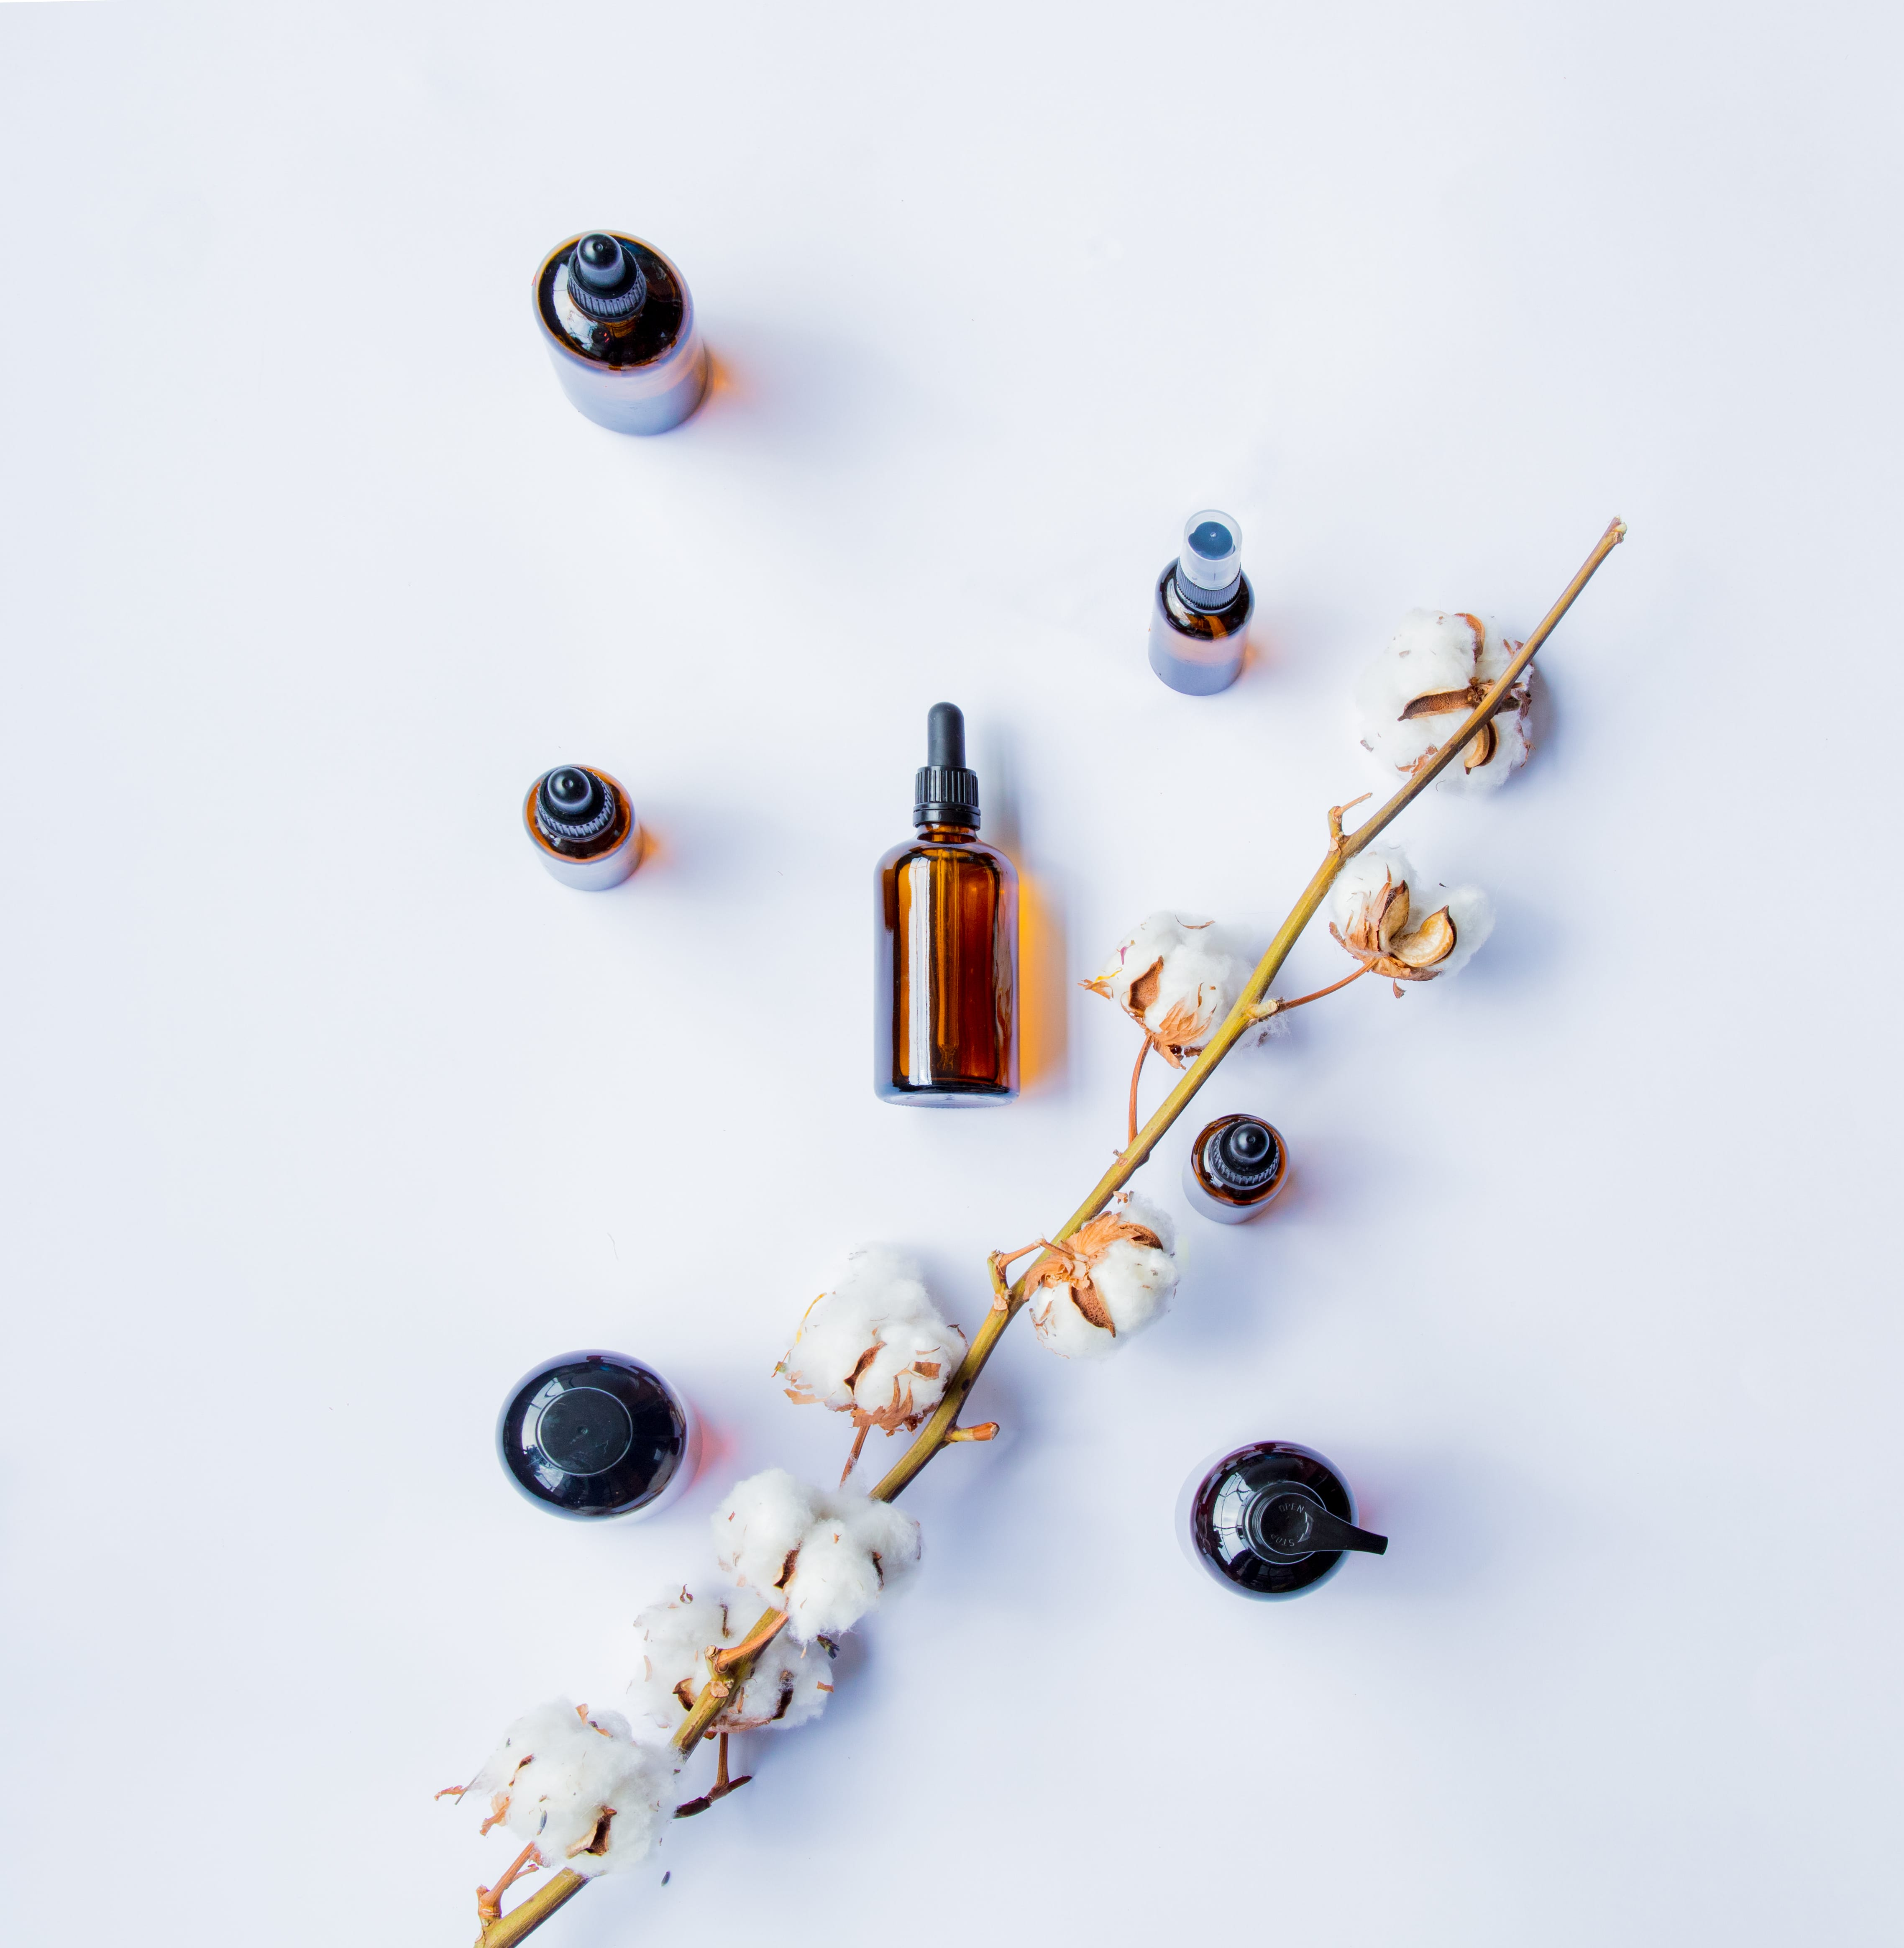 perfumer glass bottles with perfumes and cotton branch on white background.